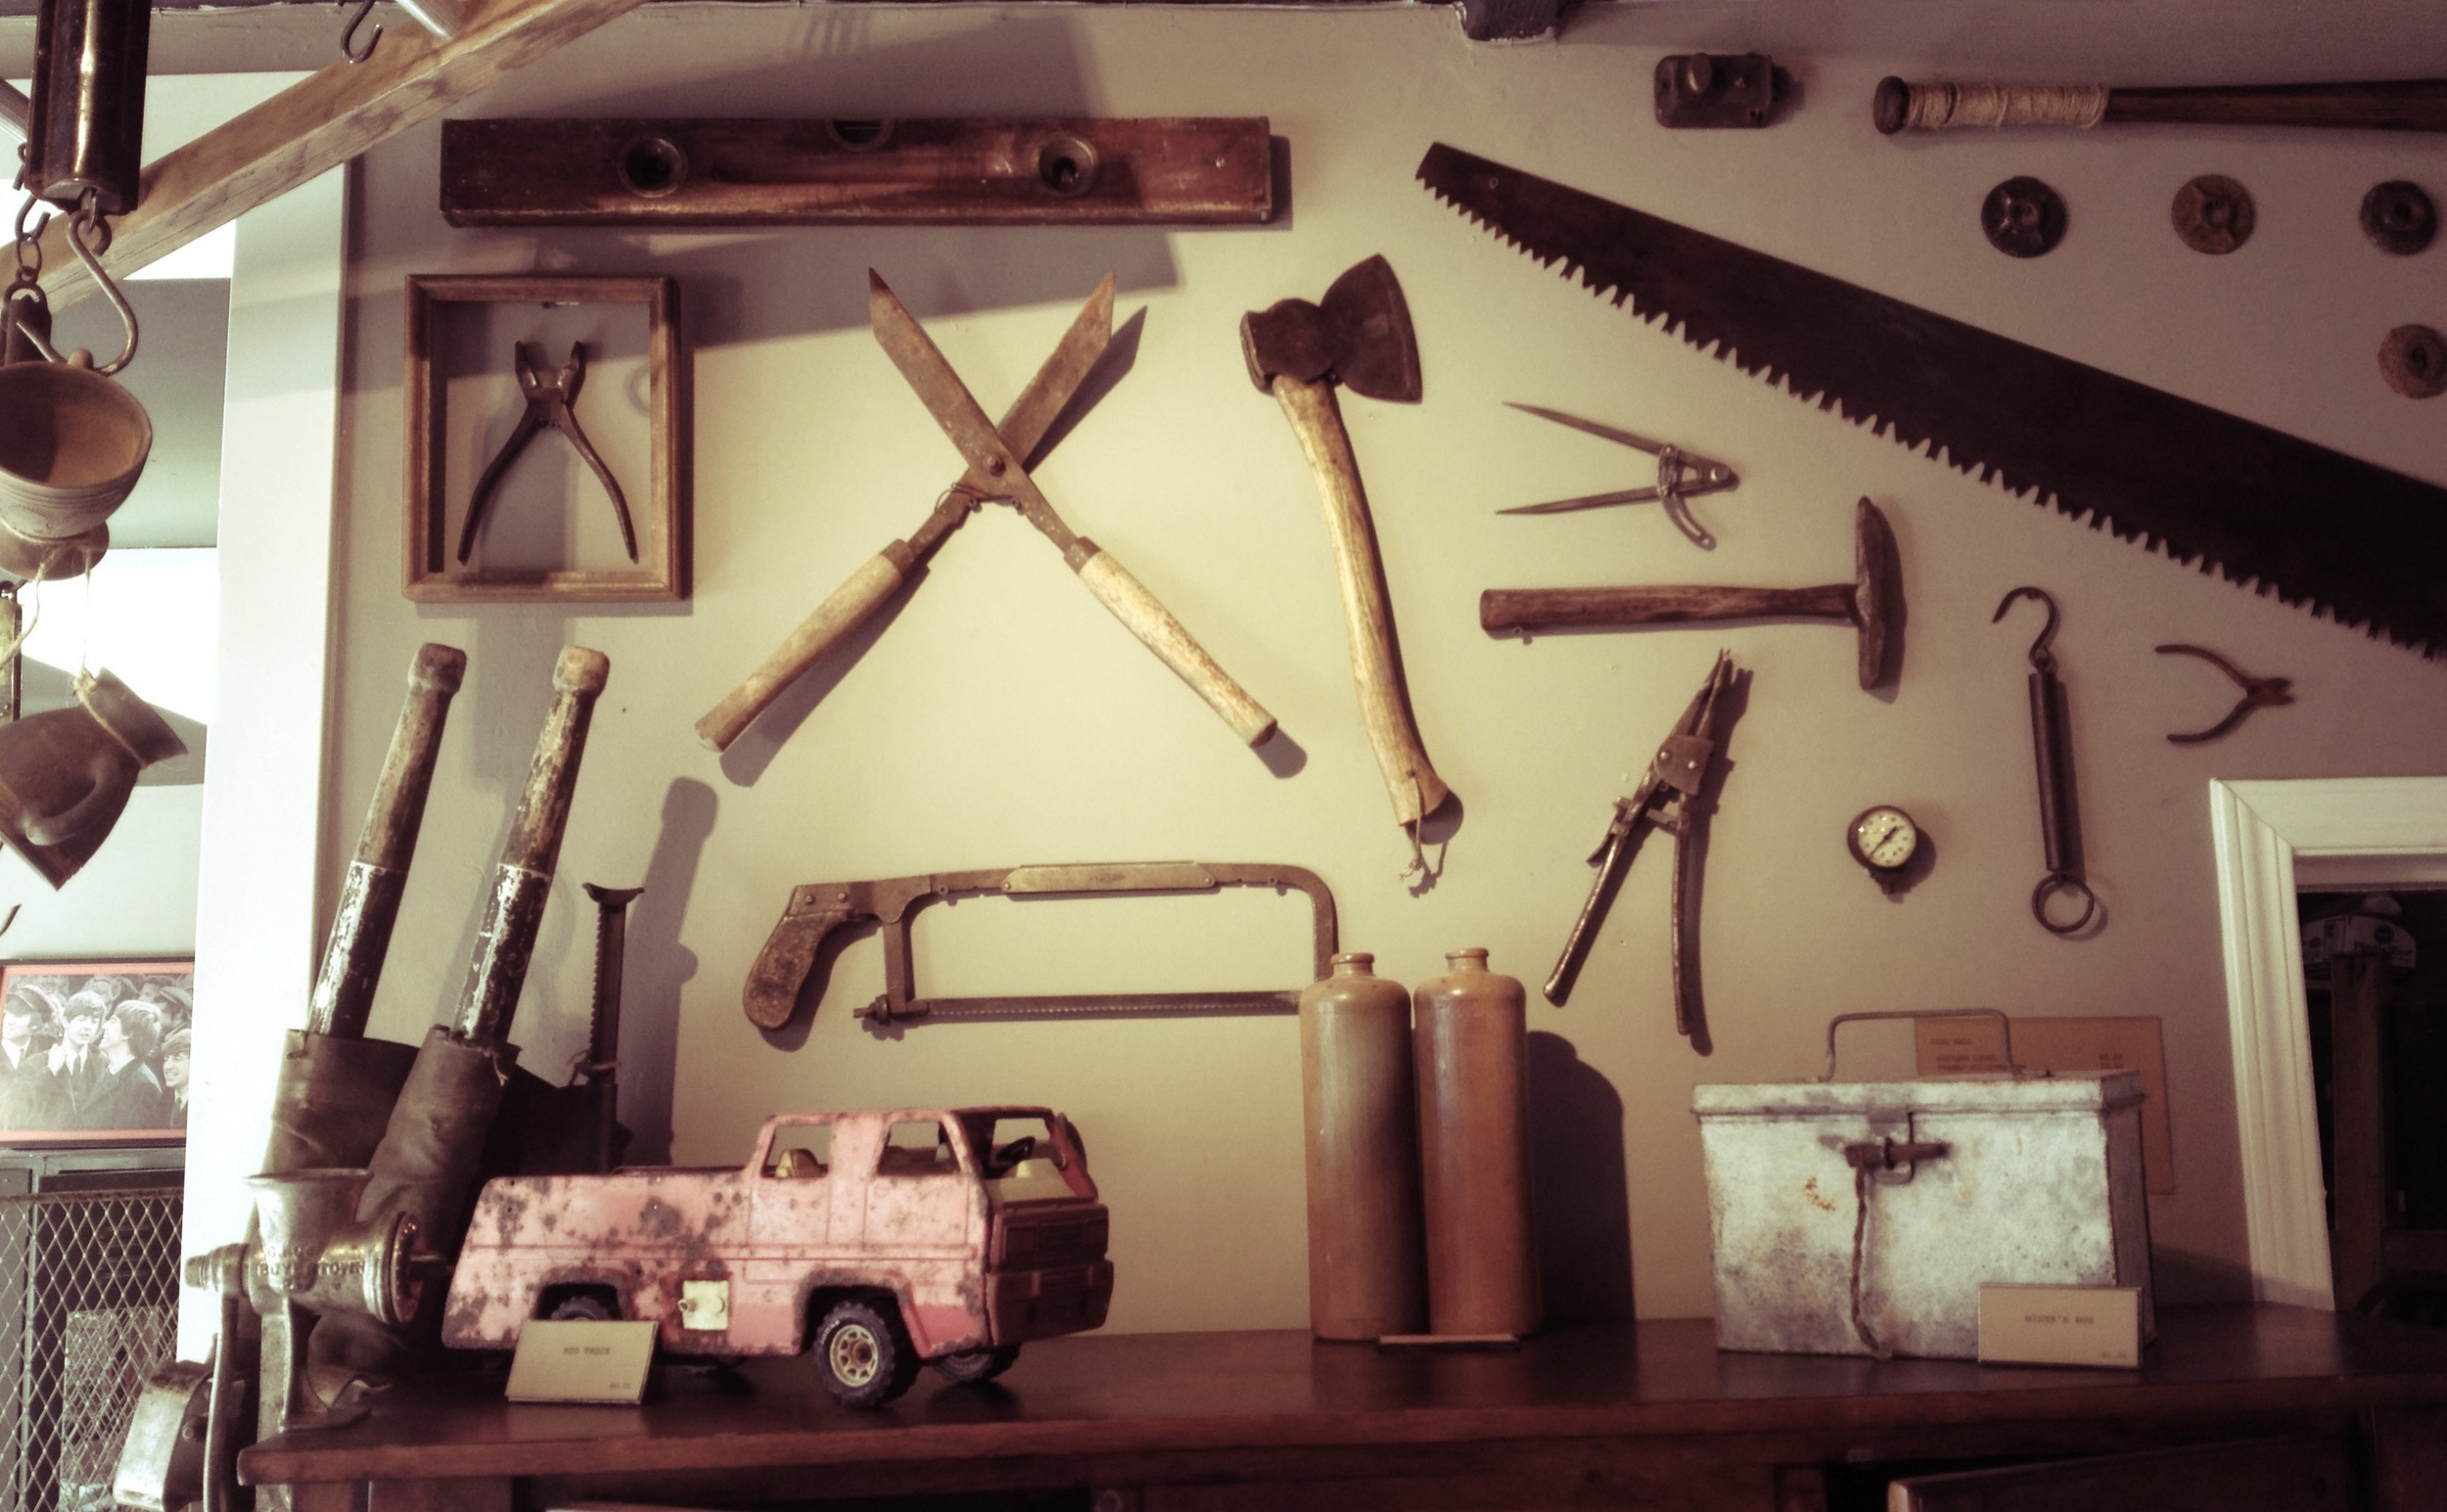 Interior display built from vintage hand tools and saws.